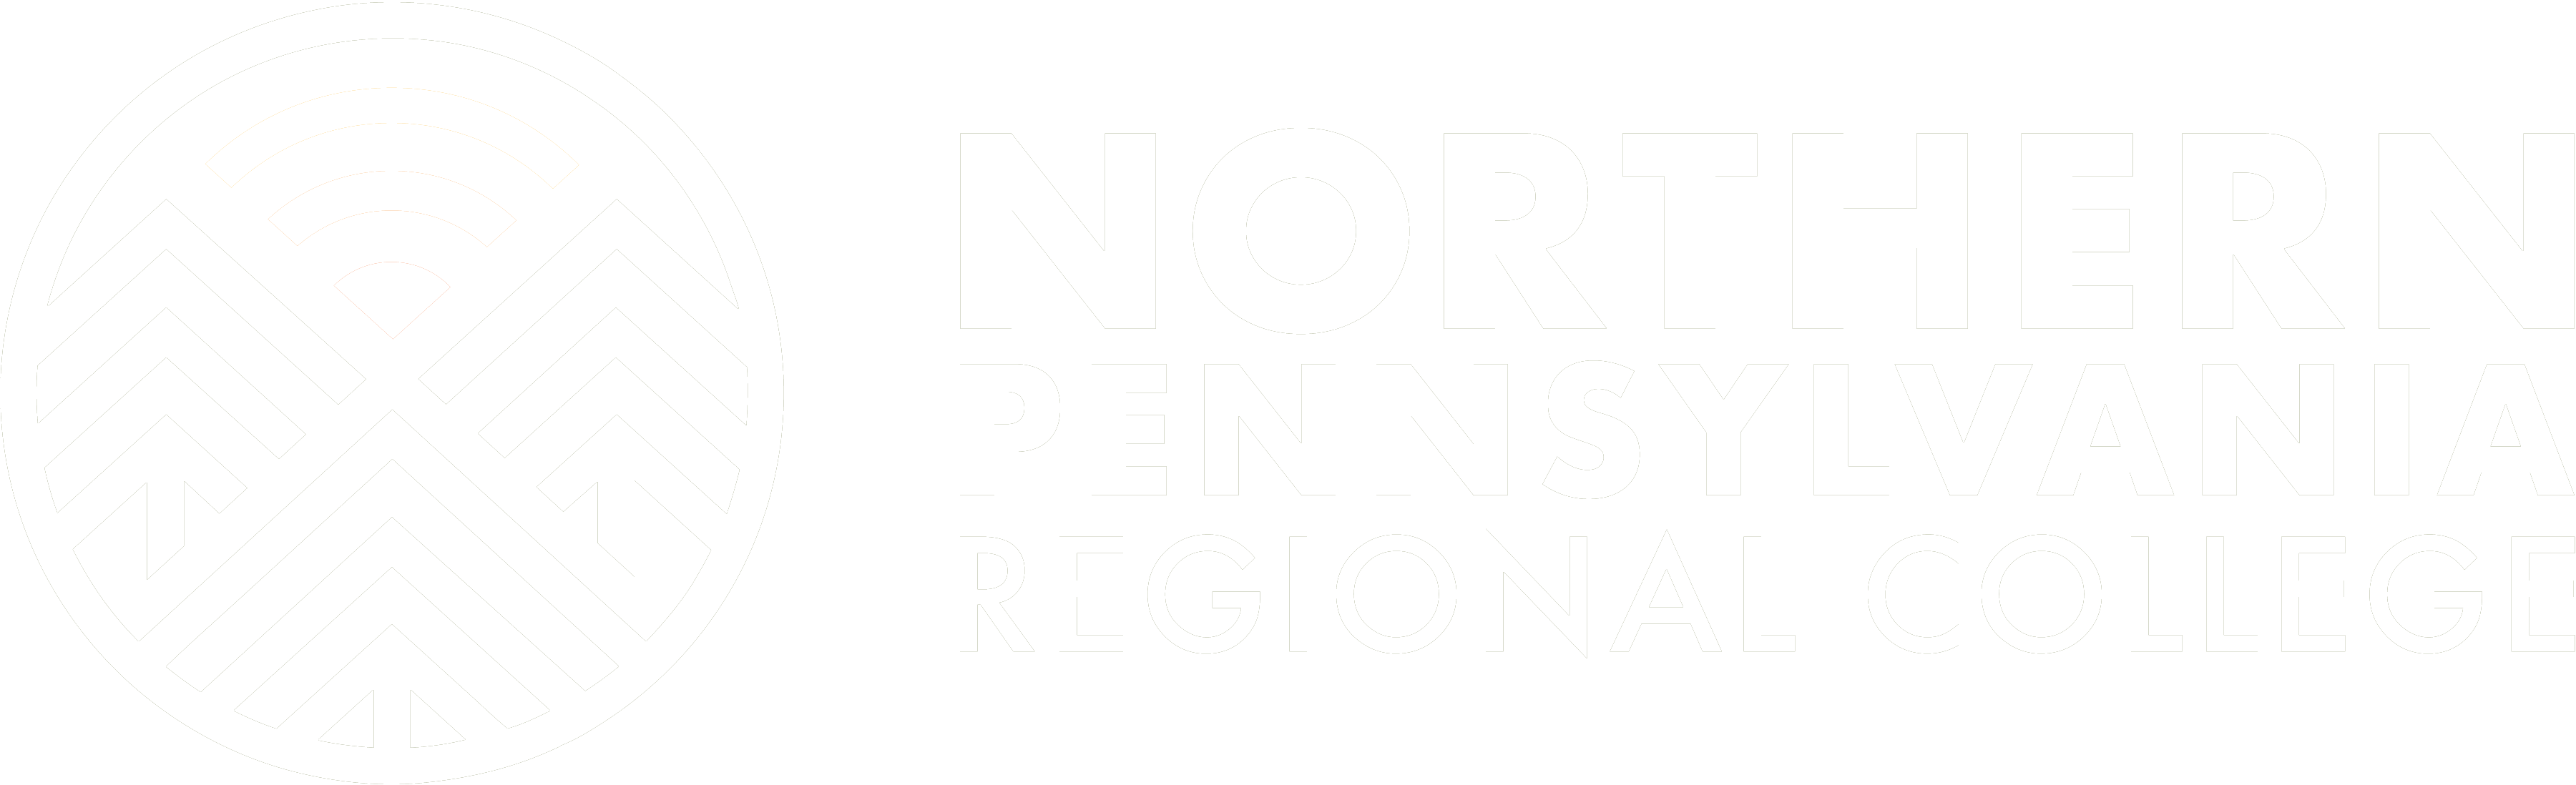 Northern Pennsylvania Regional College White Logo